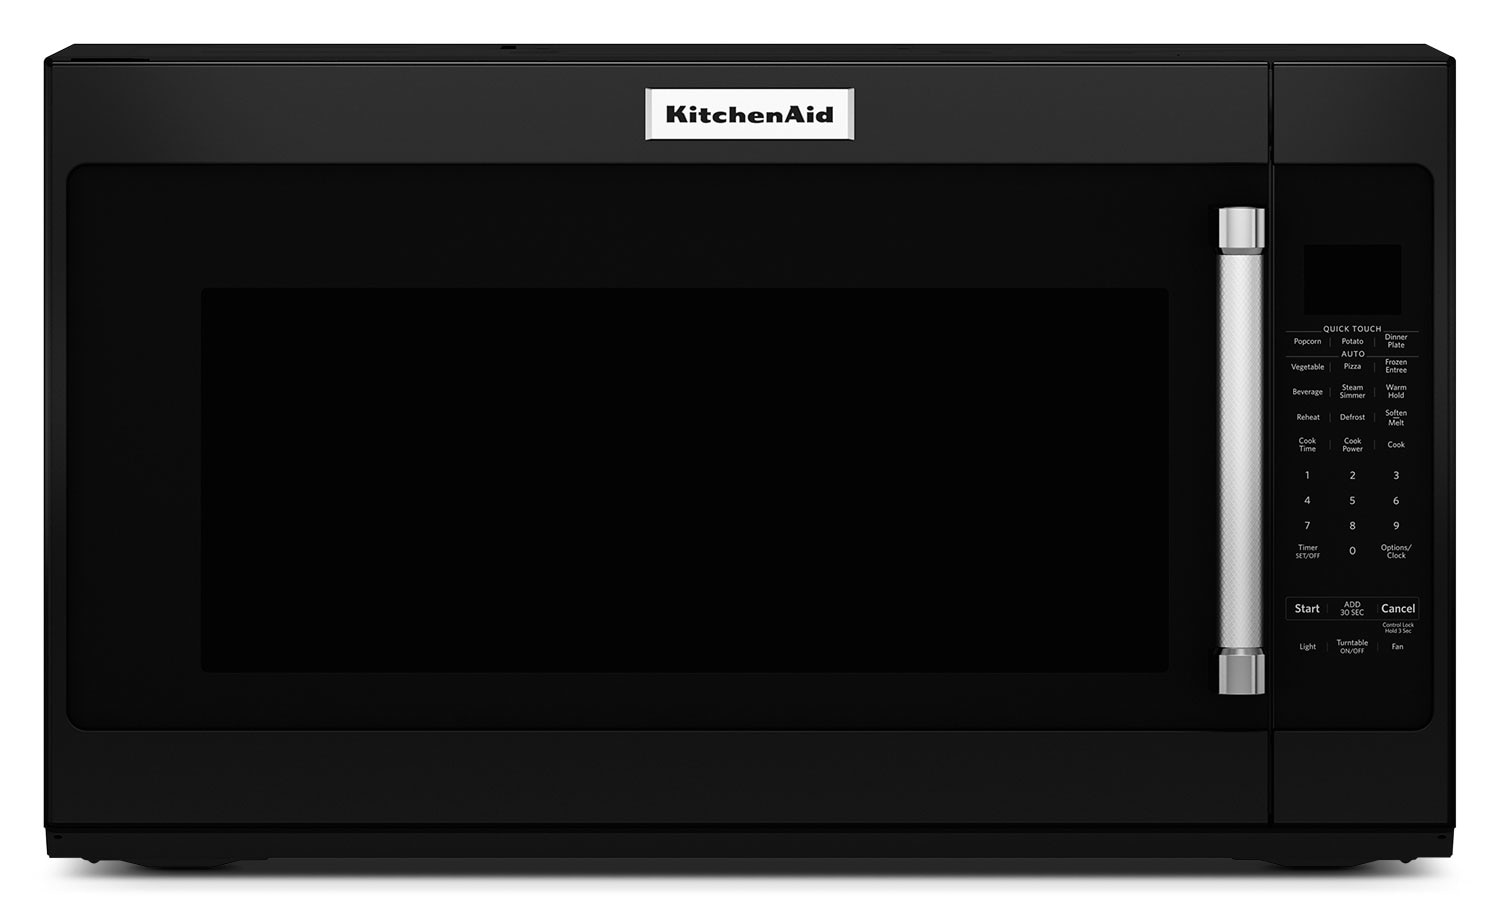 KitchenAid 2.0 Cu. Ft. Over-the-Range Microwave with Sensor Functions - Black